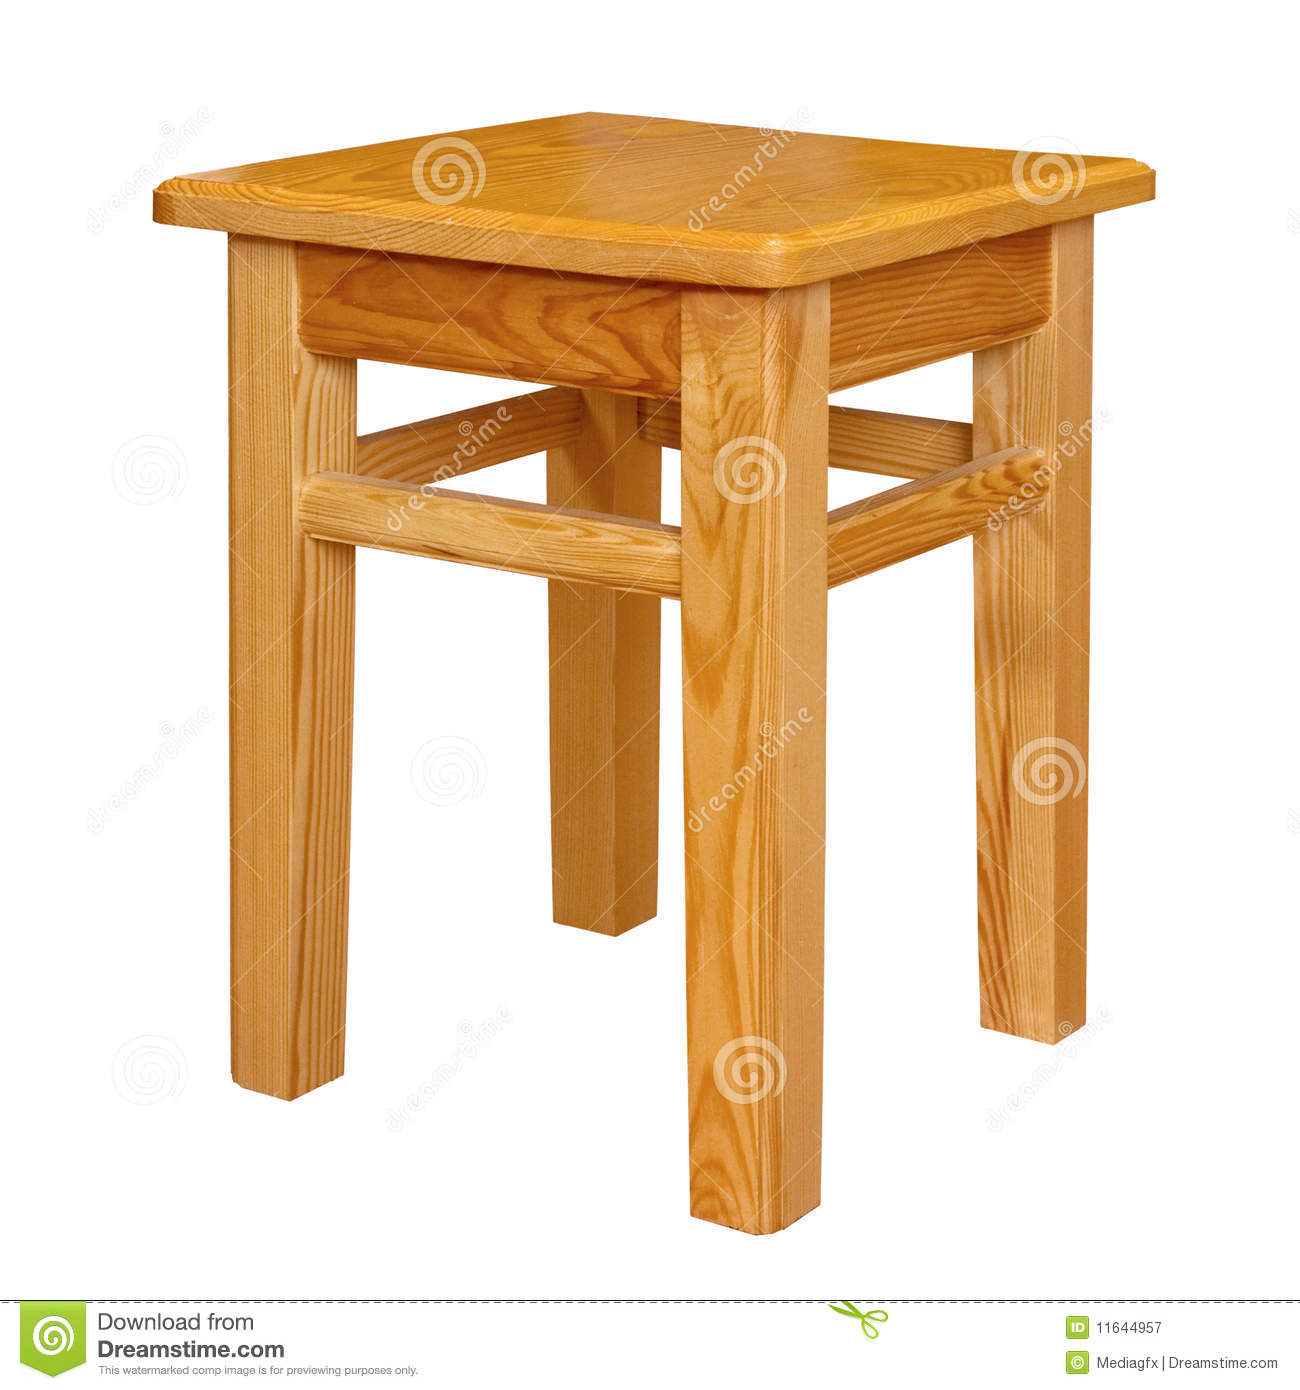 Simple Wood Stool Isolated Royalty Free Stock Photography